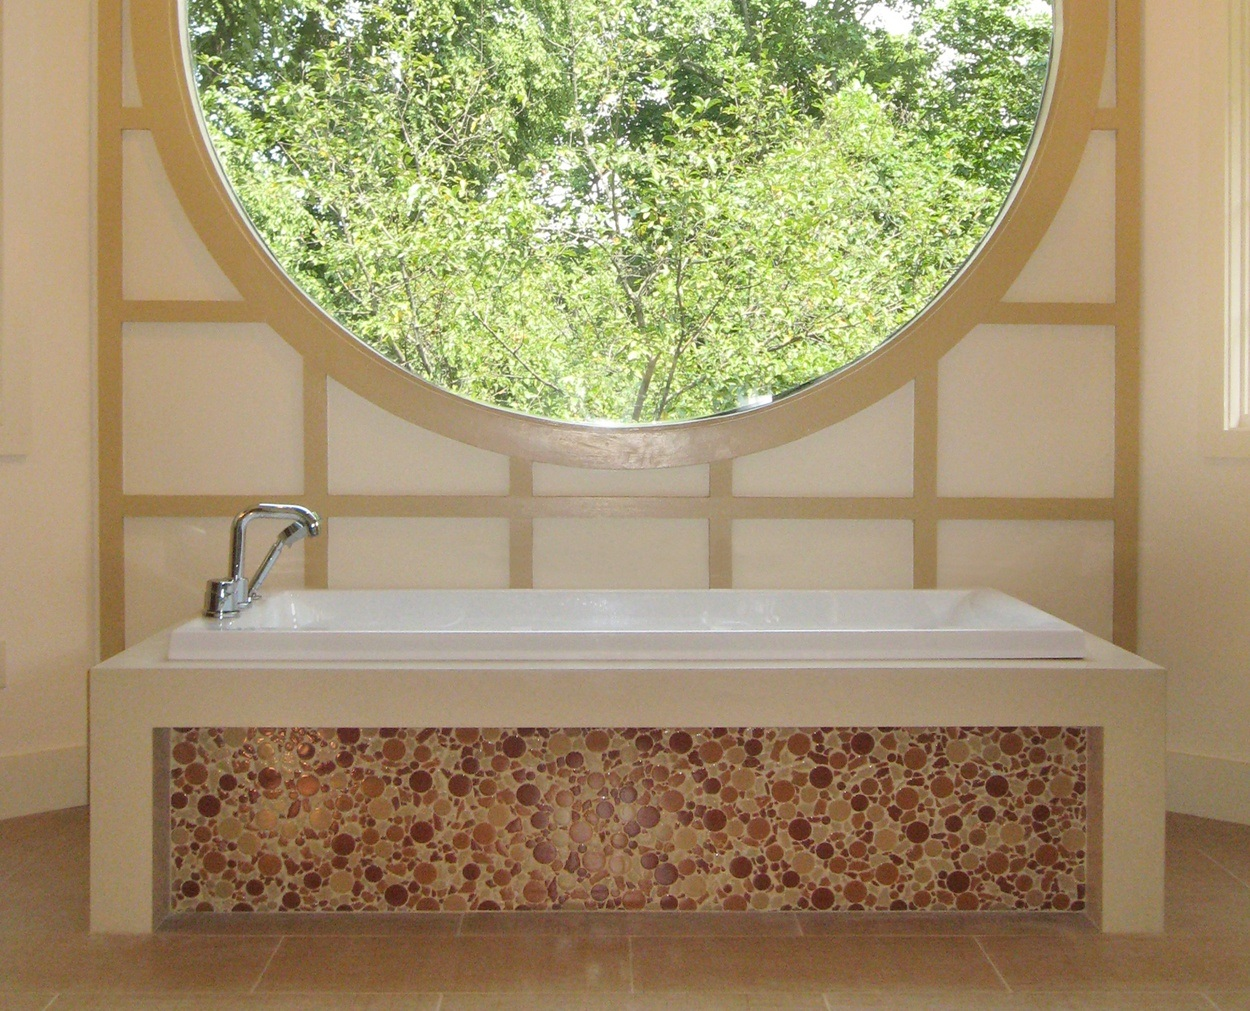 Tub deck looks like on piece of stone, with round glass tile